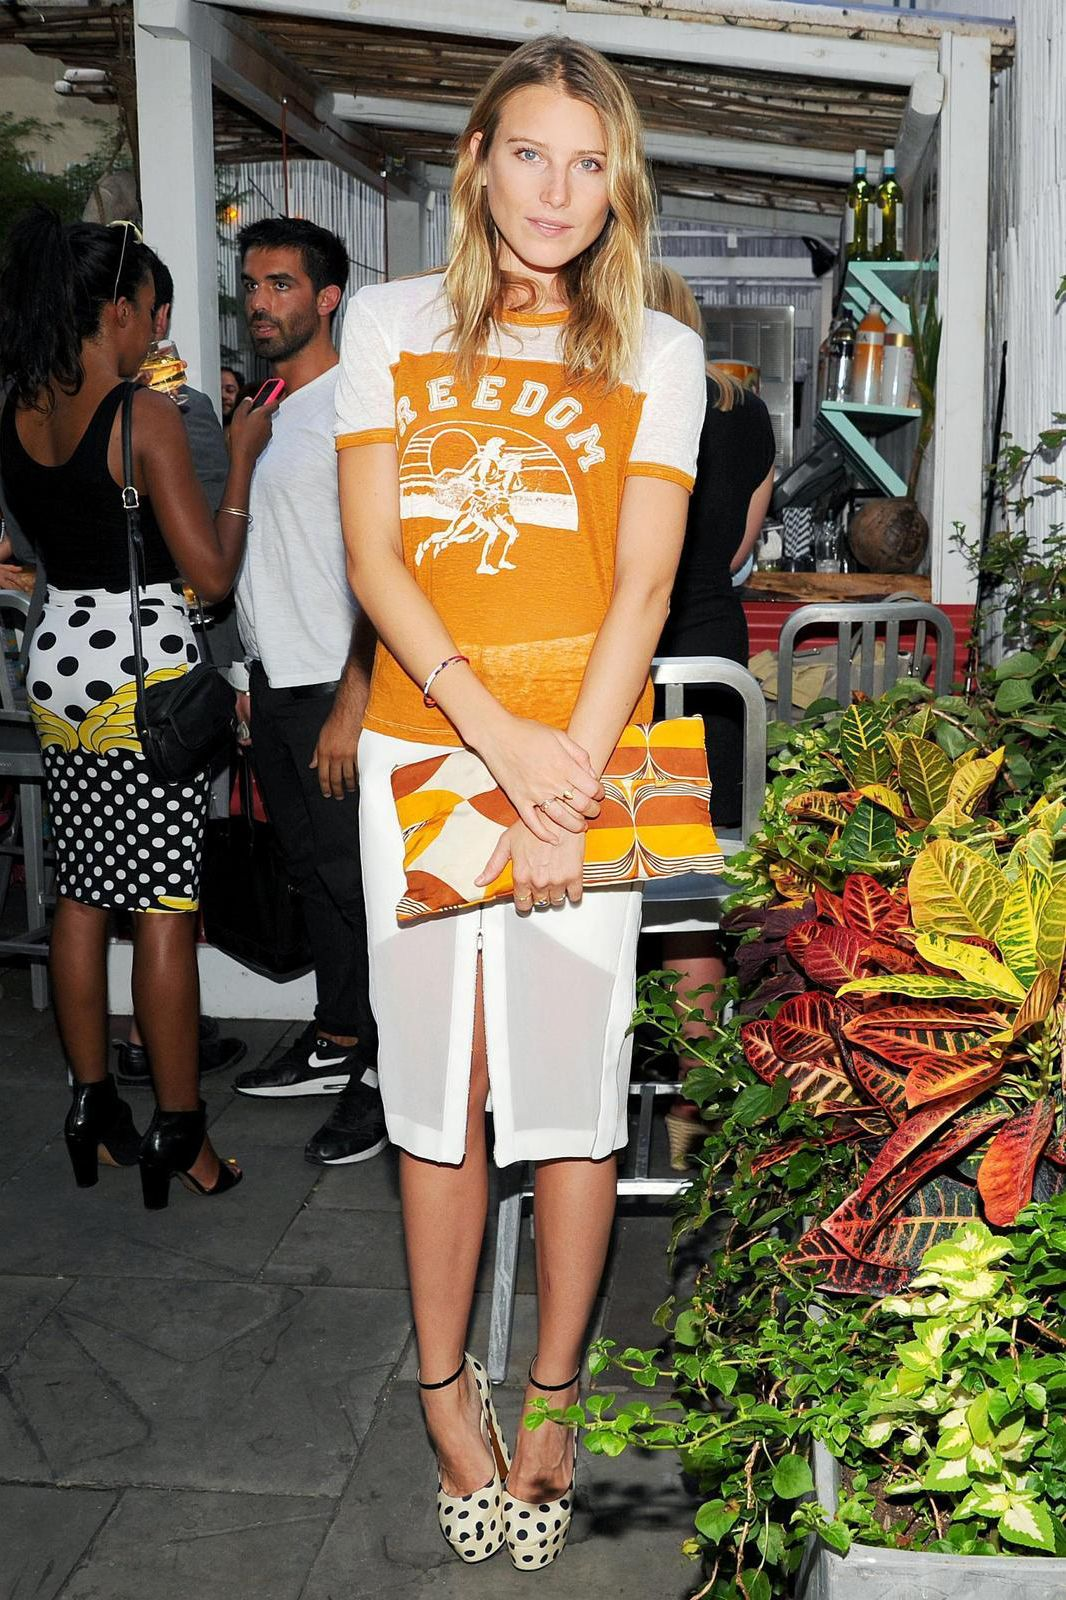 Vintage-Tee Magician Key Elements: A vintage tee, an eclectic skirt, quirky shoes  Style Icon: Jen Brill, Mary-Kate Olsen  Go-To Fashion Brand: Givenchy, Forever 21  Who's Repping It Here: Dree Hemingway